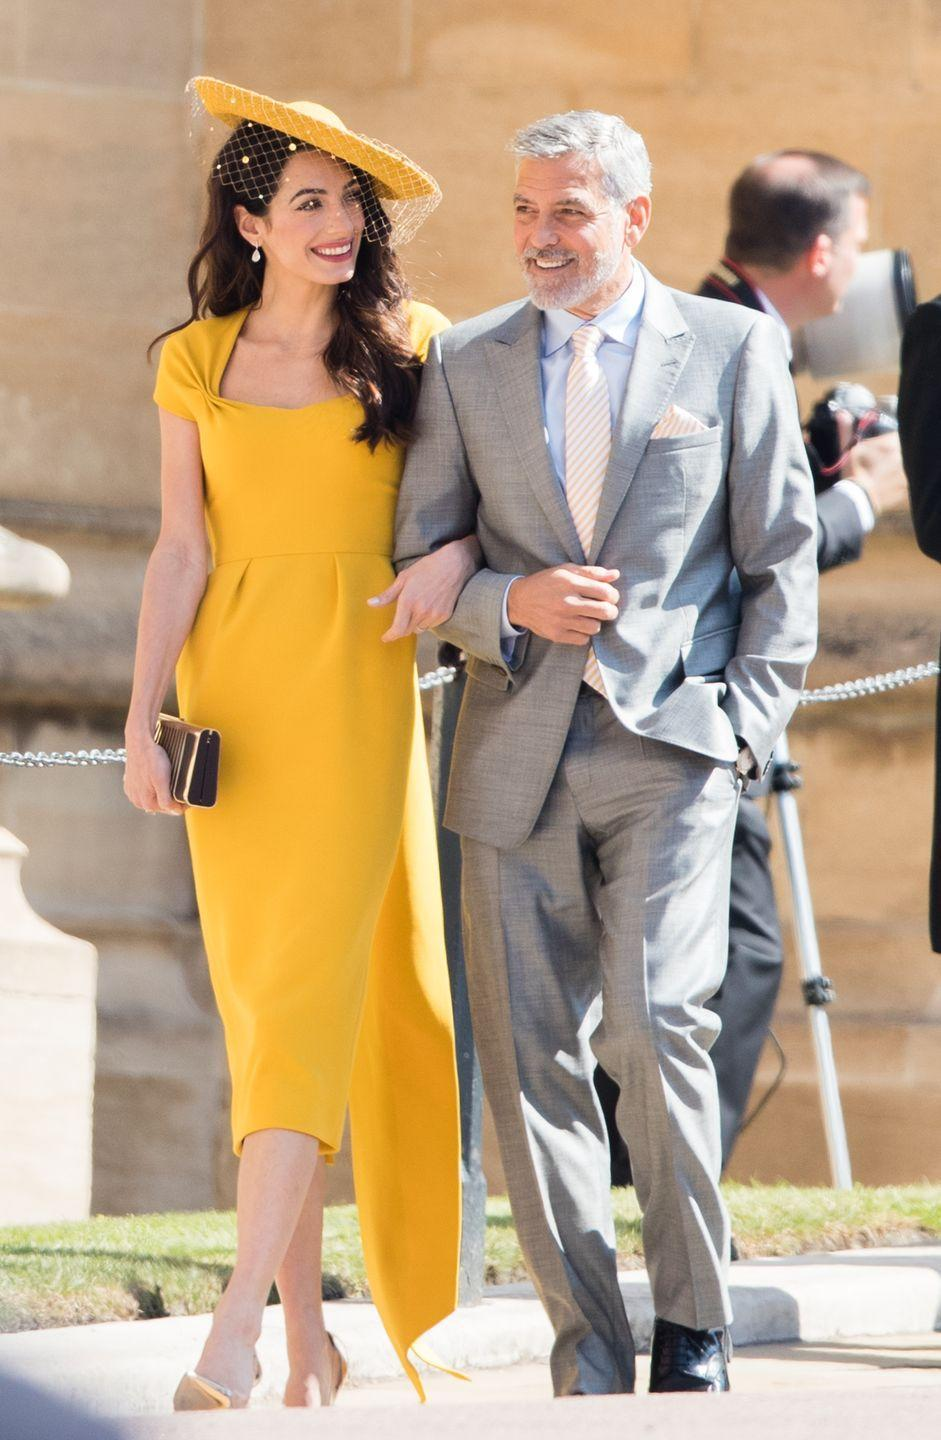 <p>Radiant in sunshine yellow and matching hat, Amal Clooney looked incred walking arm-in-arm with George. She appears so relaxed, you'd have no idea she was attending the royal wedding of Harry and Meghan, streamed live to billions of people. </p>